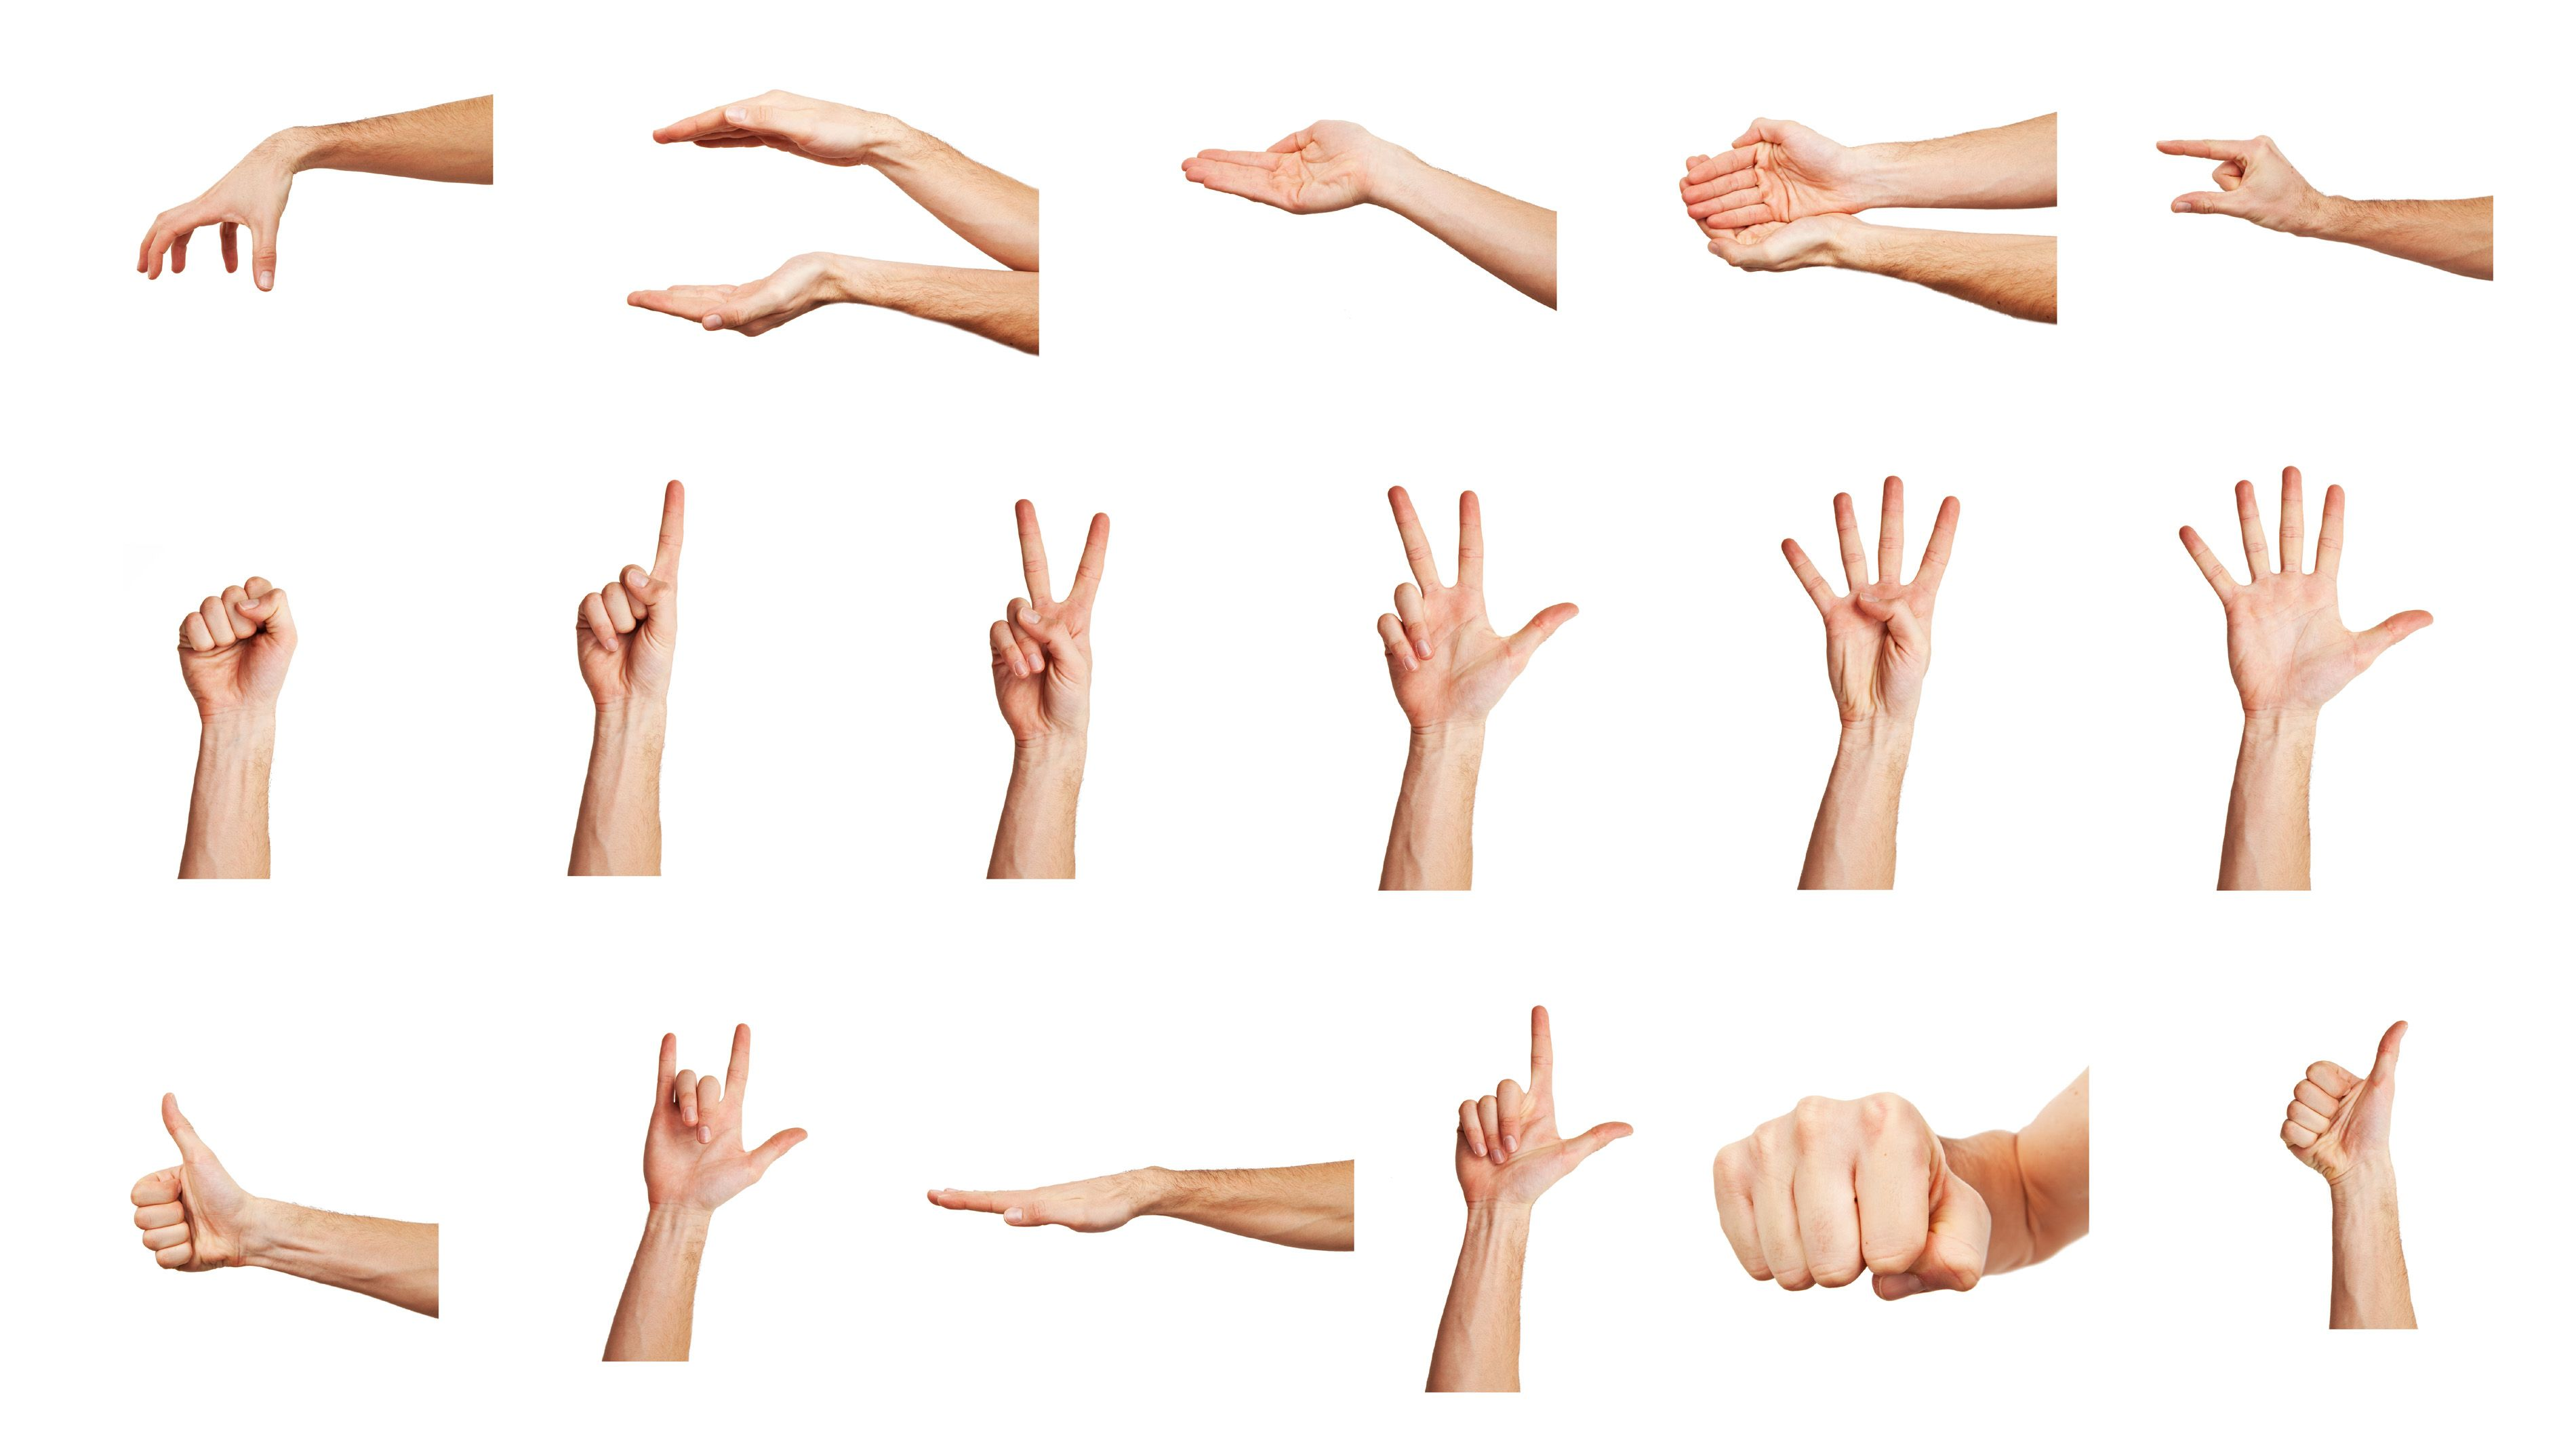 The Hand Counting Is Very Different From What We Loosely